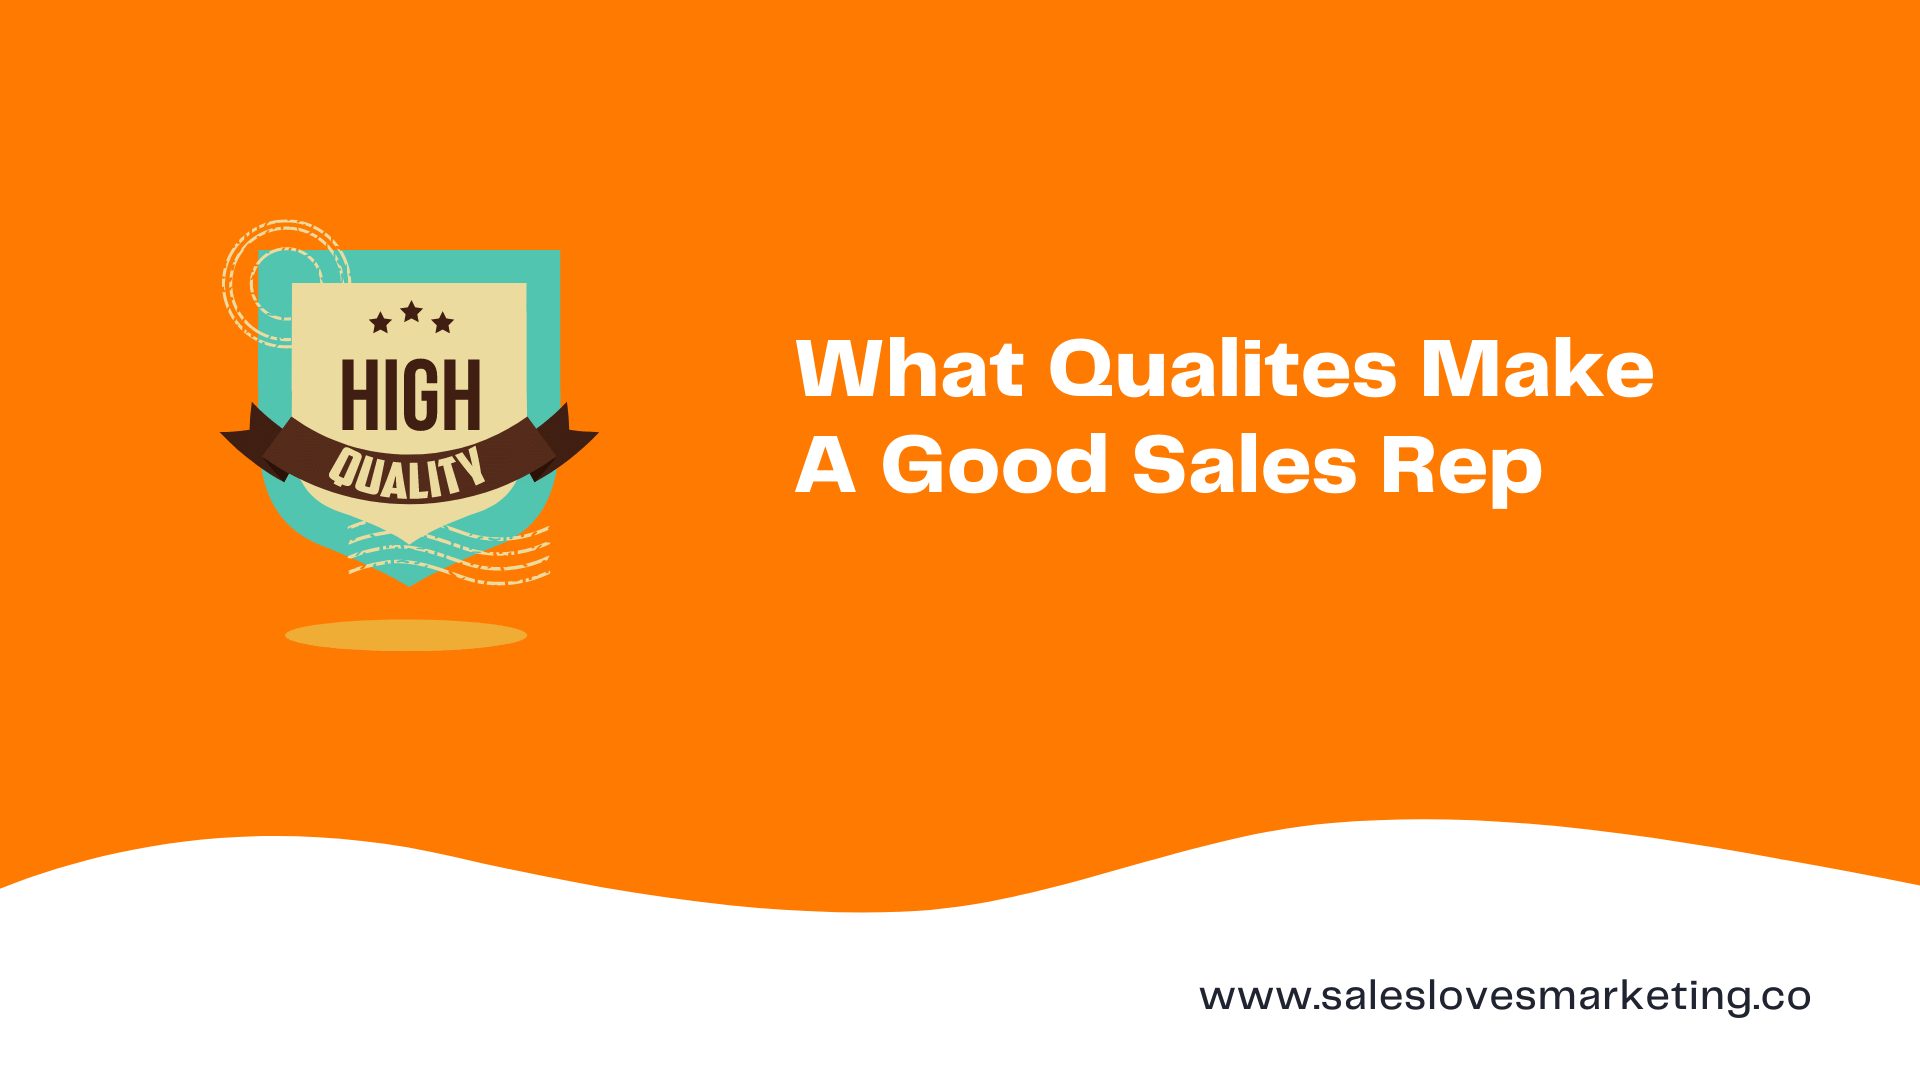 What Qualities Make A Good Sales Rep?